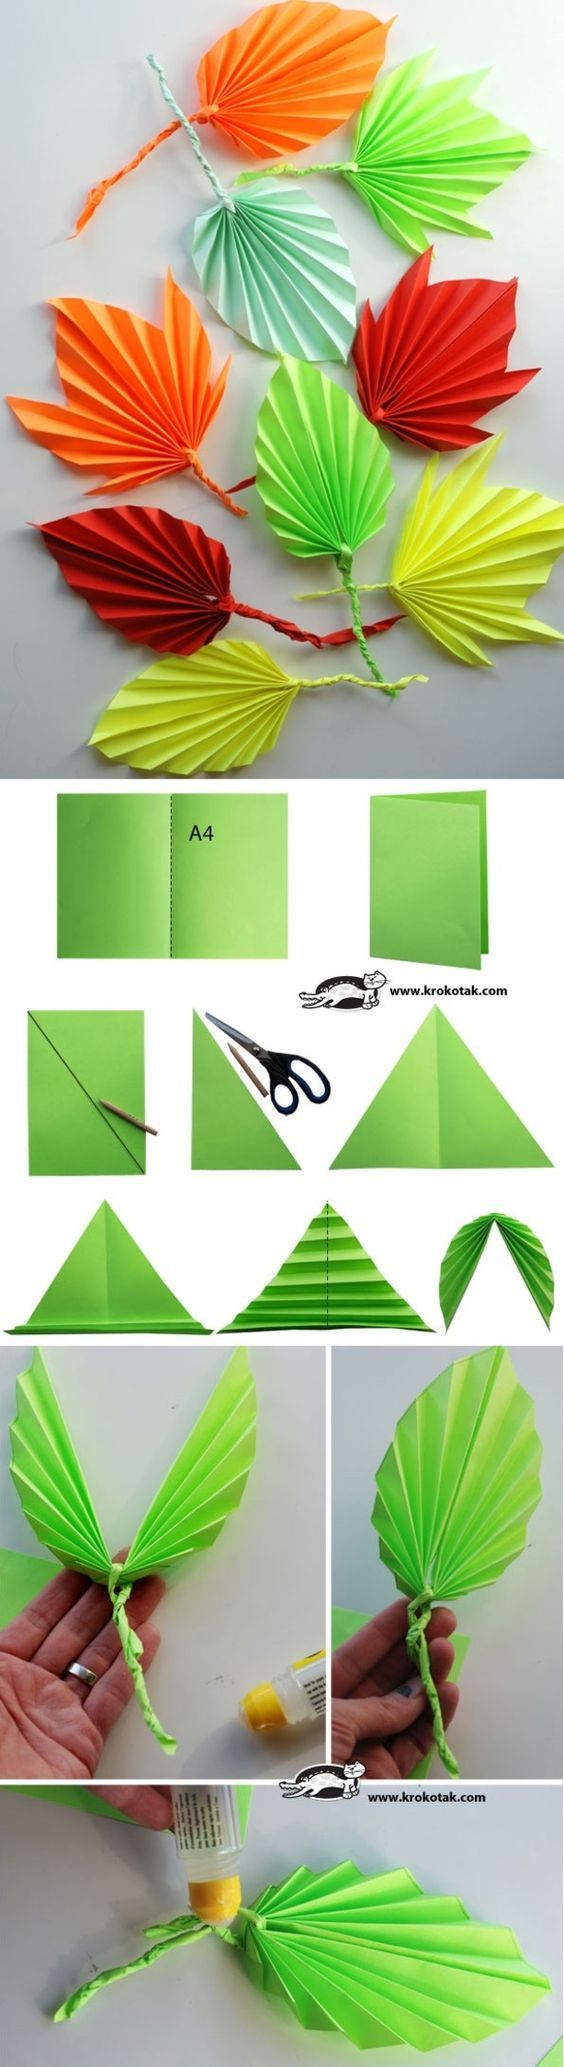 1.fold paper in half & draw diagonal 2. cut along diagonal...use 2 loose triangles to twist into vine 3. open symmetrical triangle and fold 4. leave if folded, twist paper vine or pipecleaner into middle 5. open and tape: